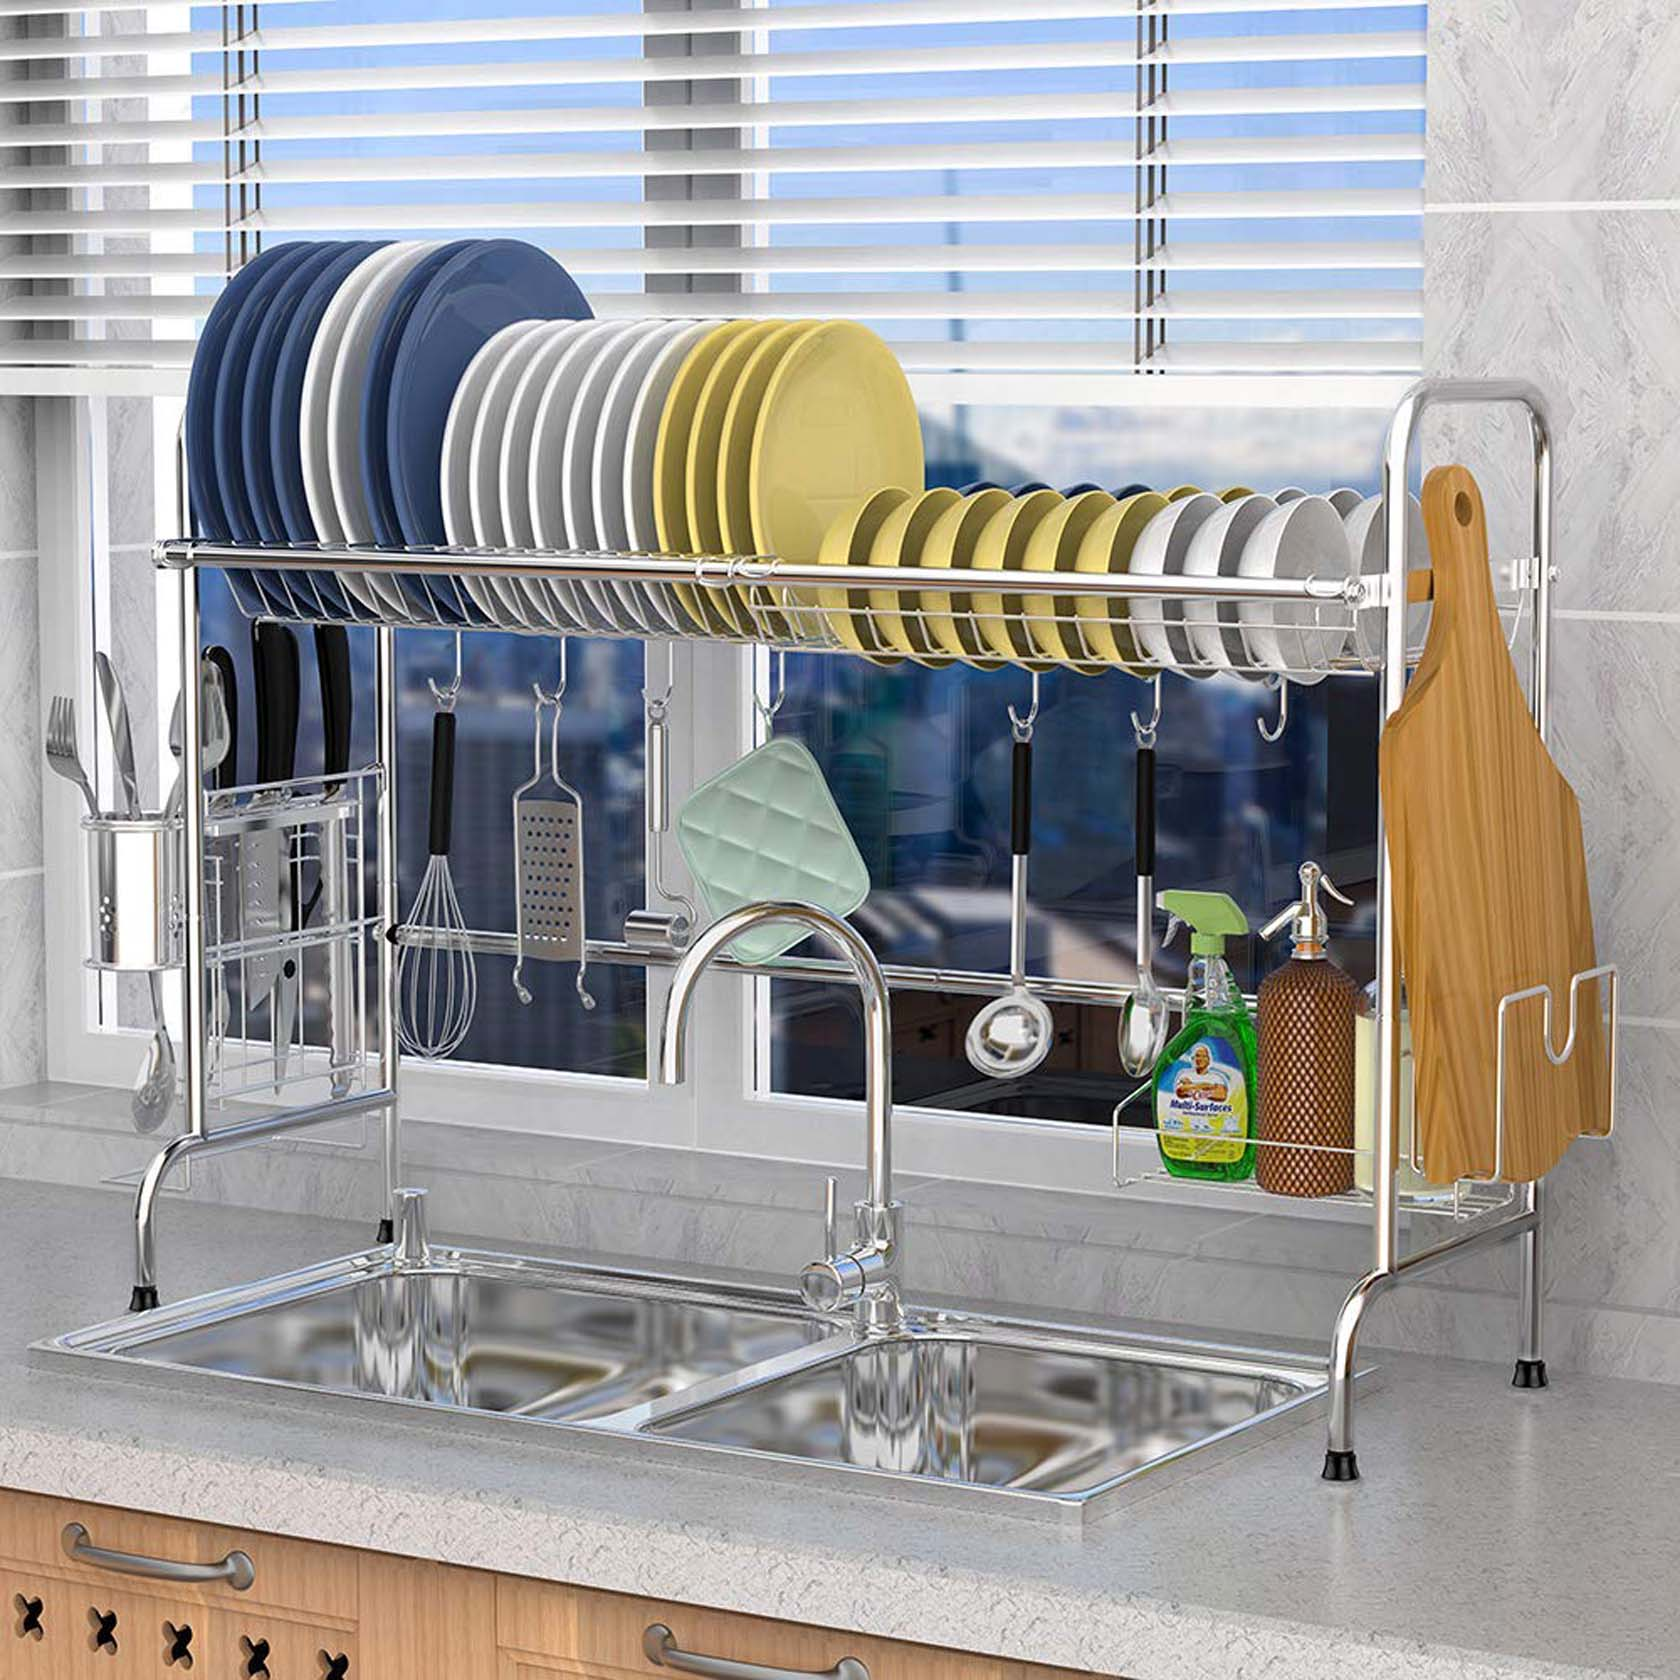 An Automated Rack For Kitchen Utensils